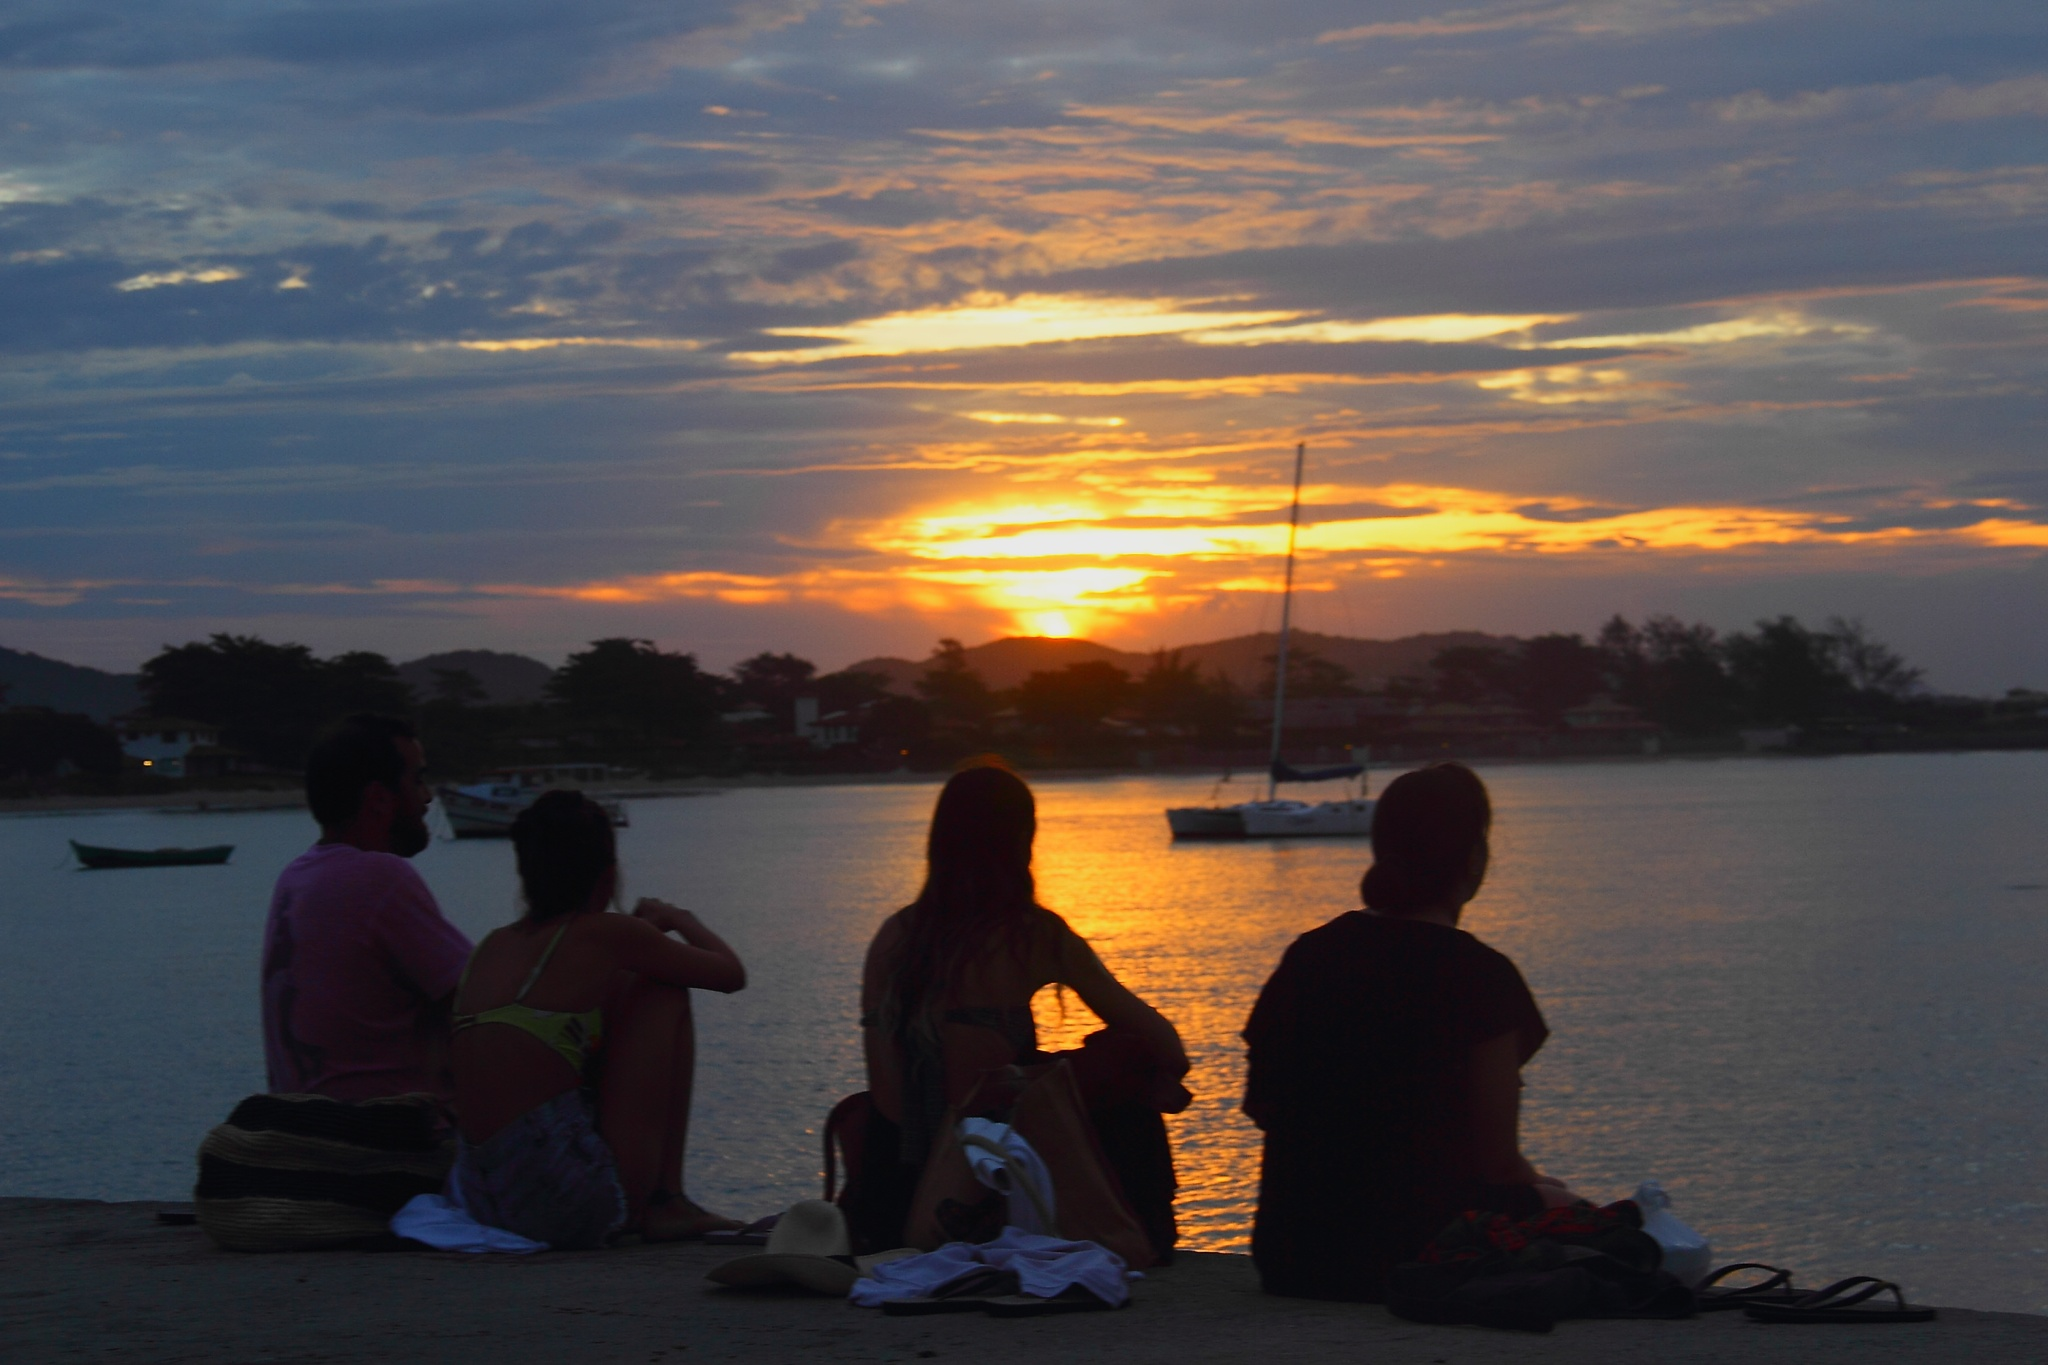 FRIENDS ASSIST THE SUNSET by Ellan Lustosa Photojournalist